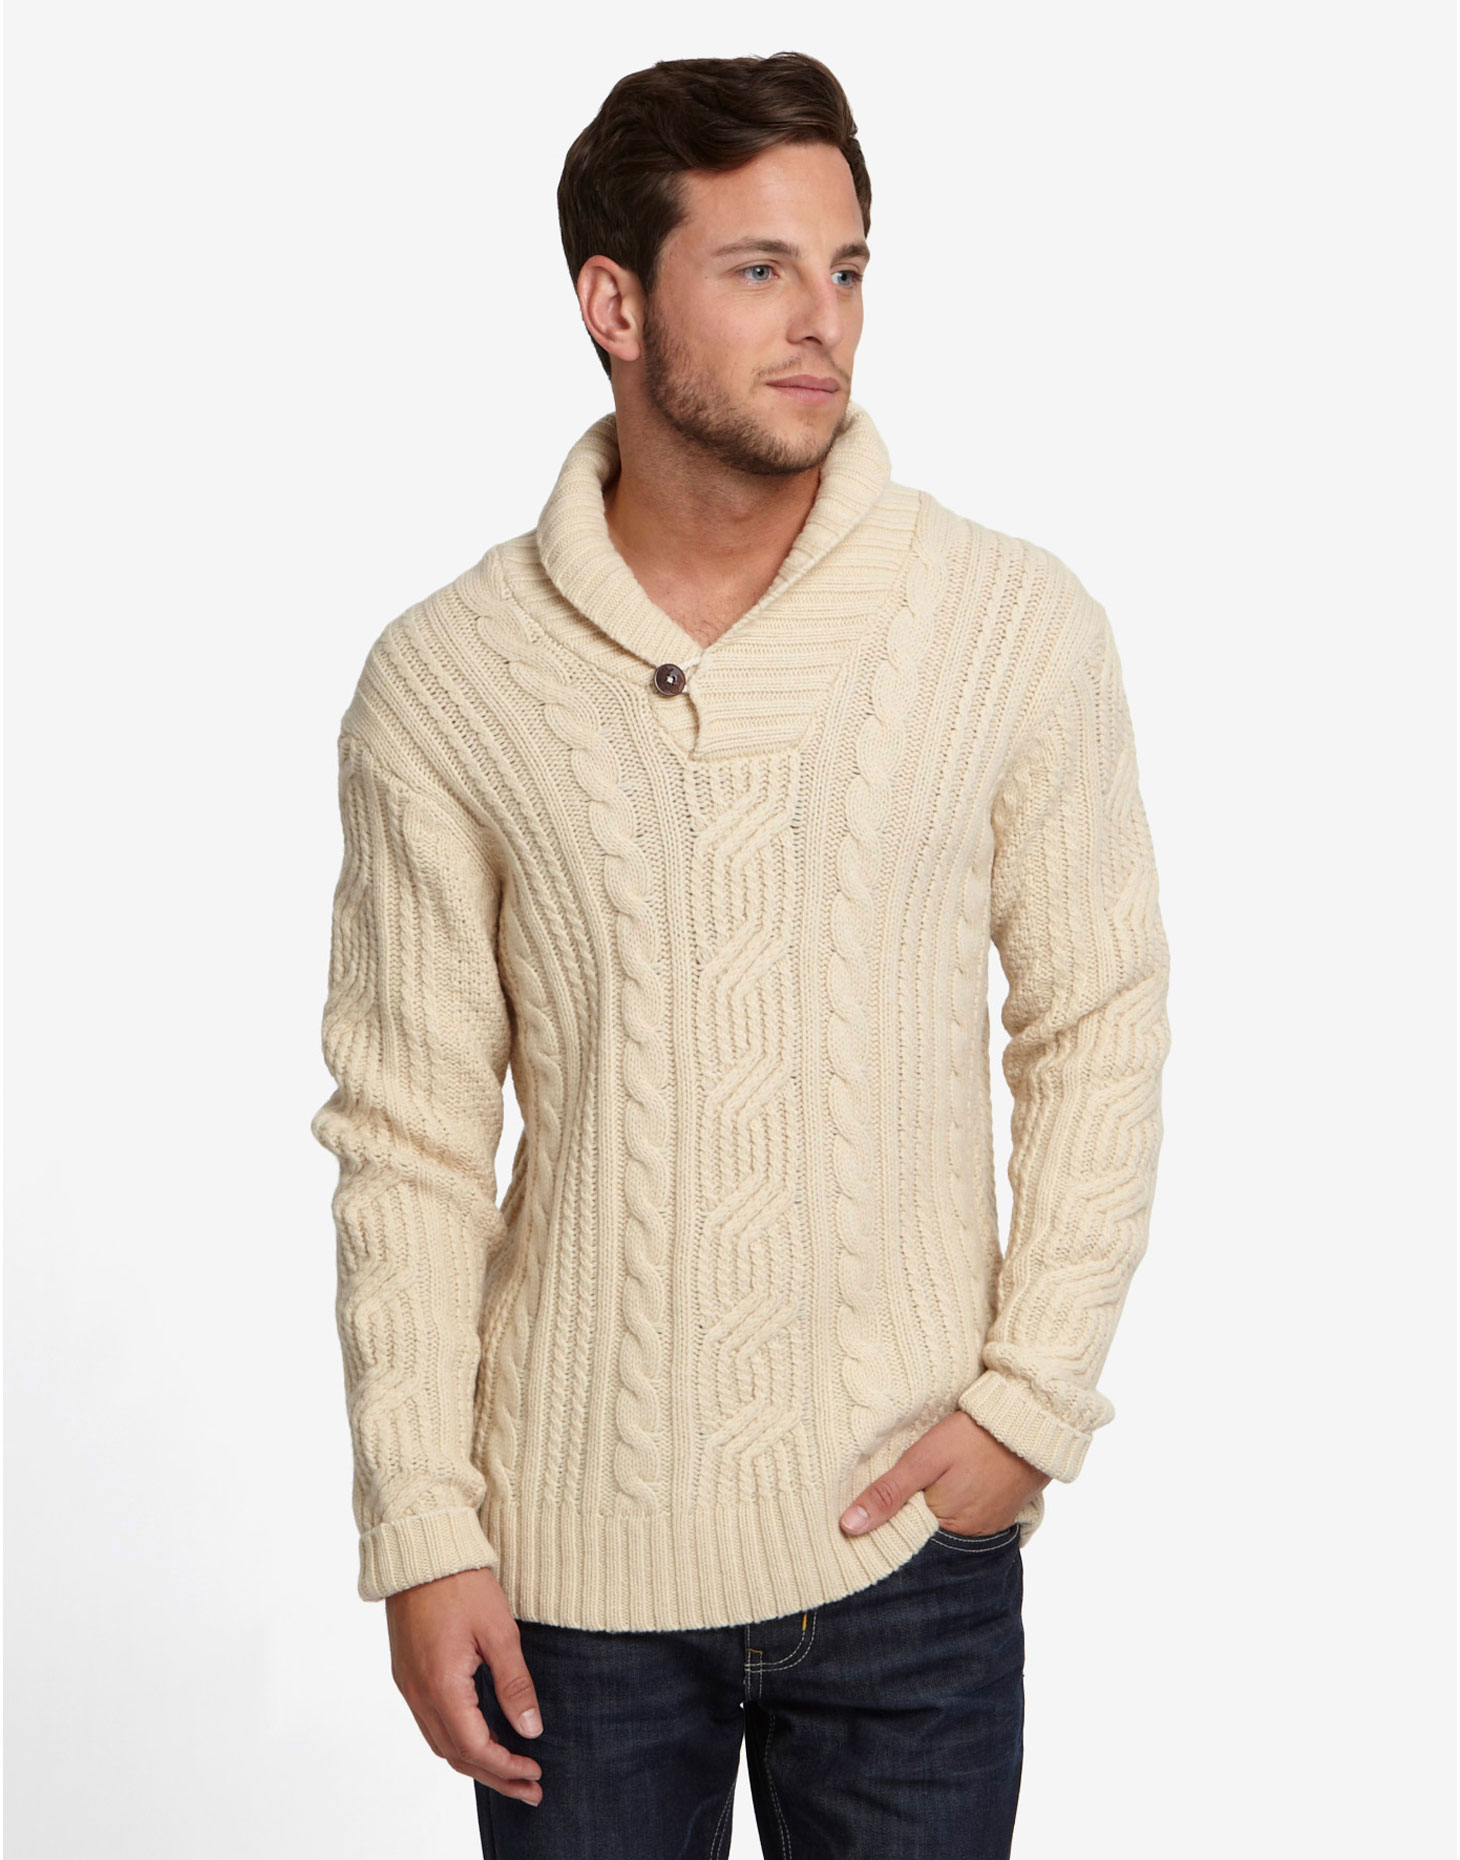 Mens Jumper: Spending Winter with Style